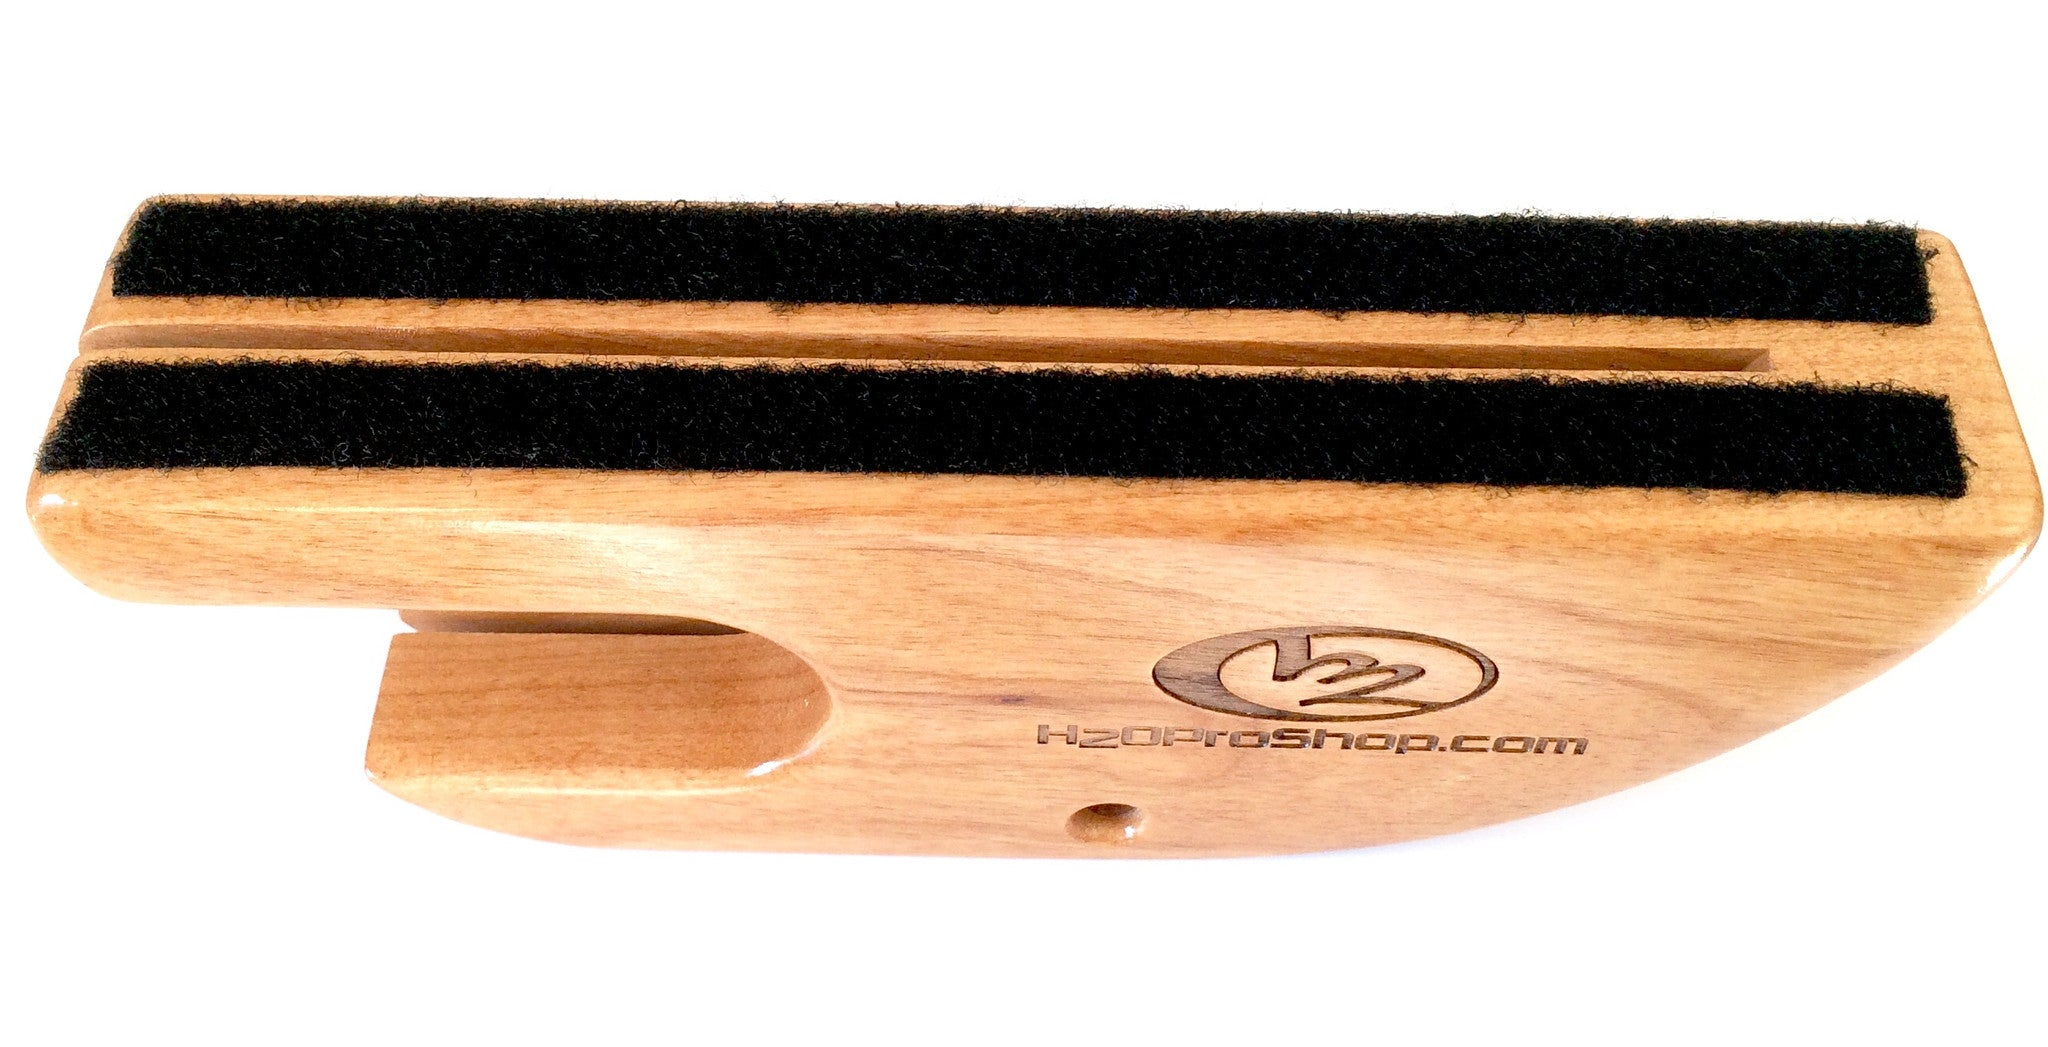 Ski Fin Protector - Wooden Style - Skier Gift from H2O